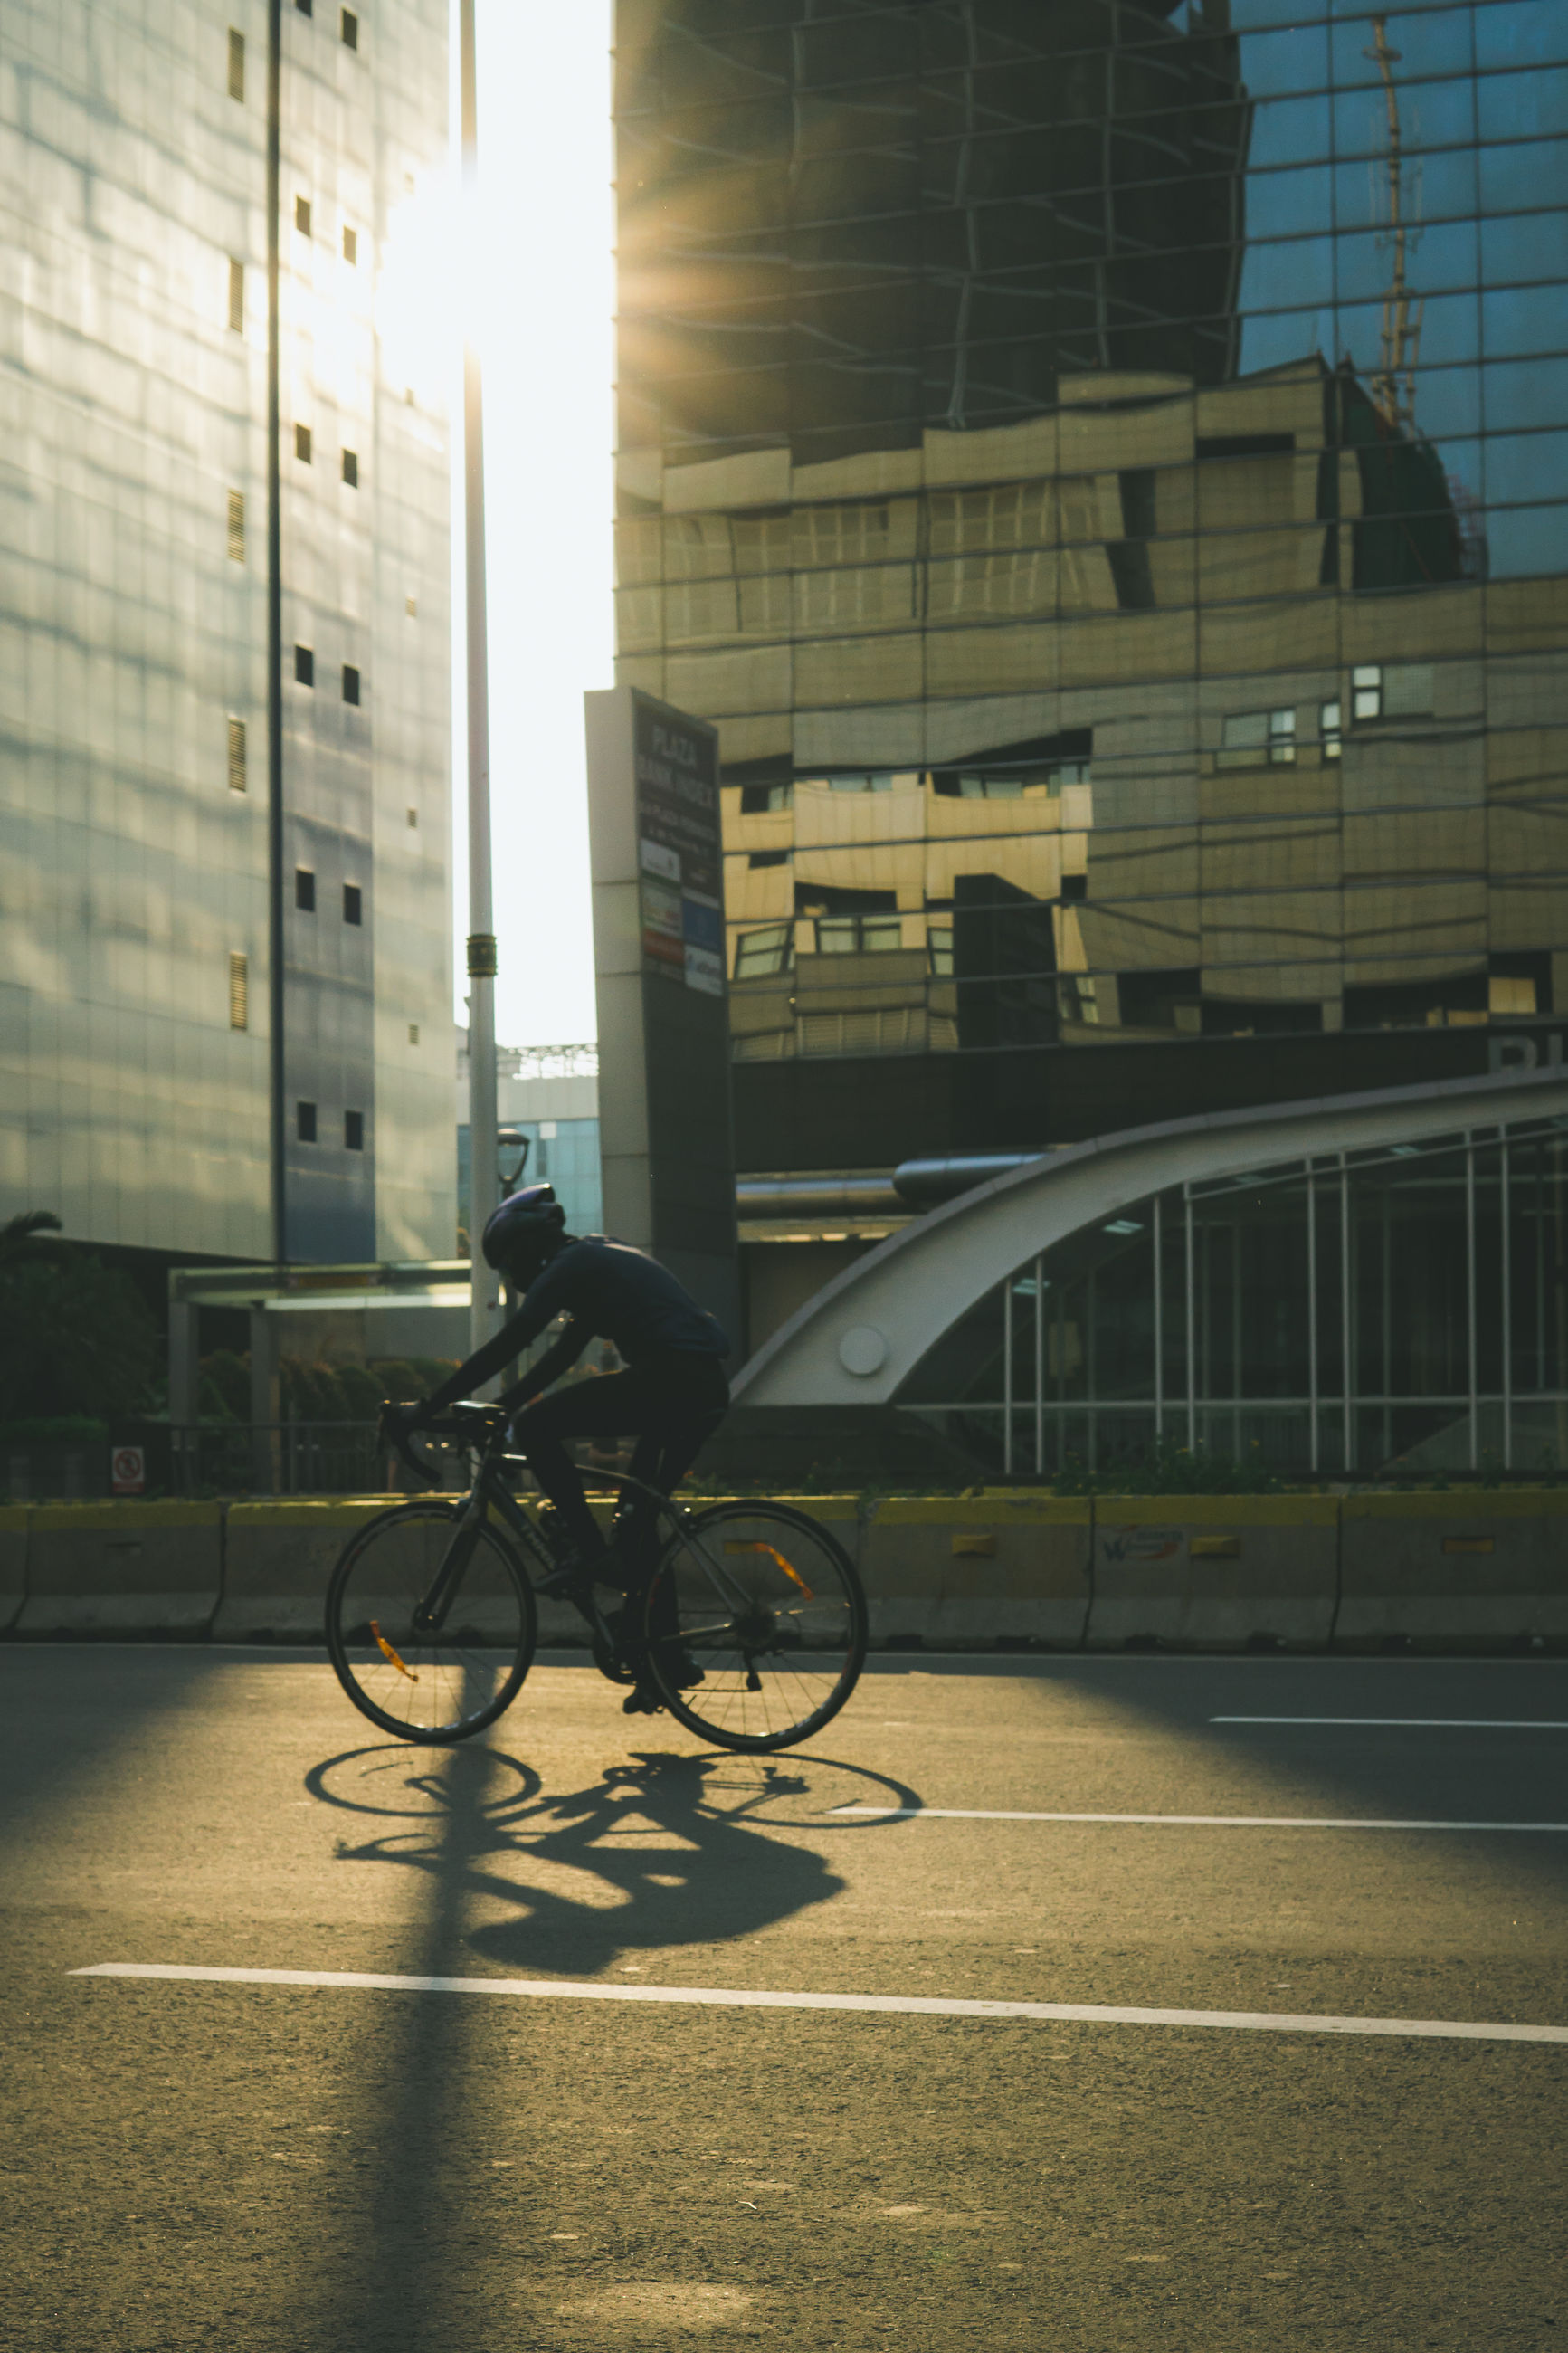 building exterior, built structure, architecture, bicycle, transportation, city, mode of transportation, land vehicle, sunlight, building, street, day, nature, outdoors, shadow, one person, office building exterior, real people, riding